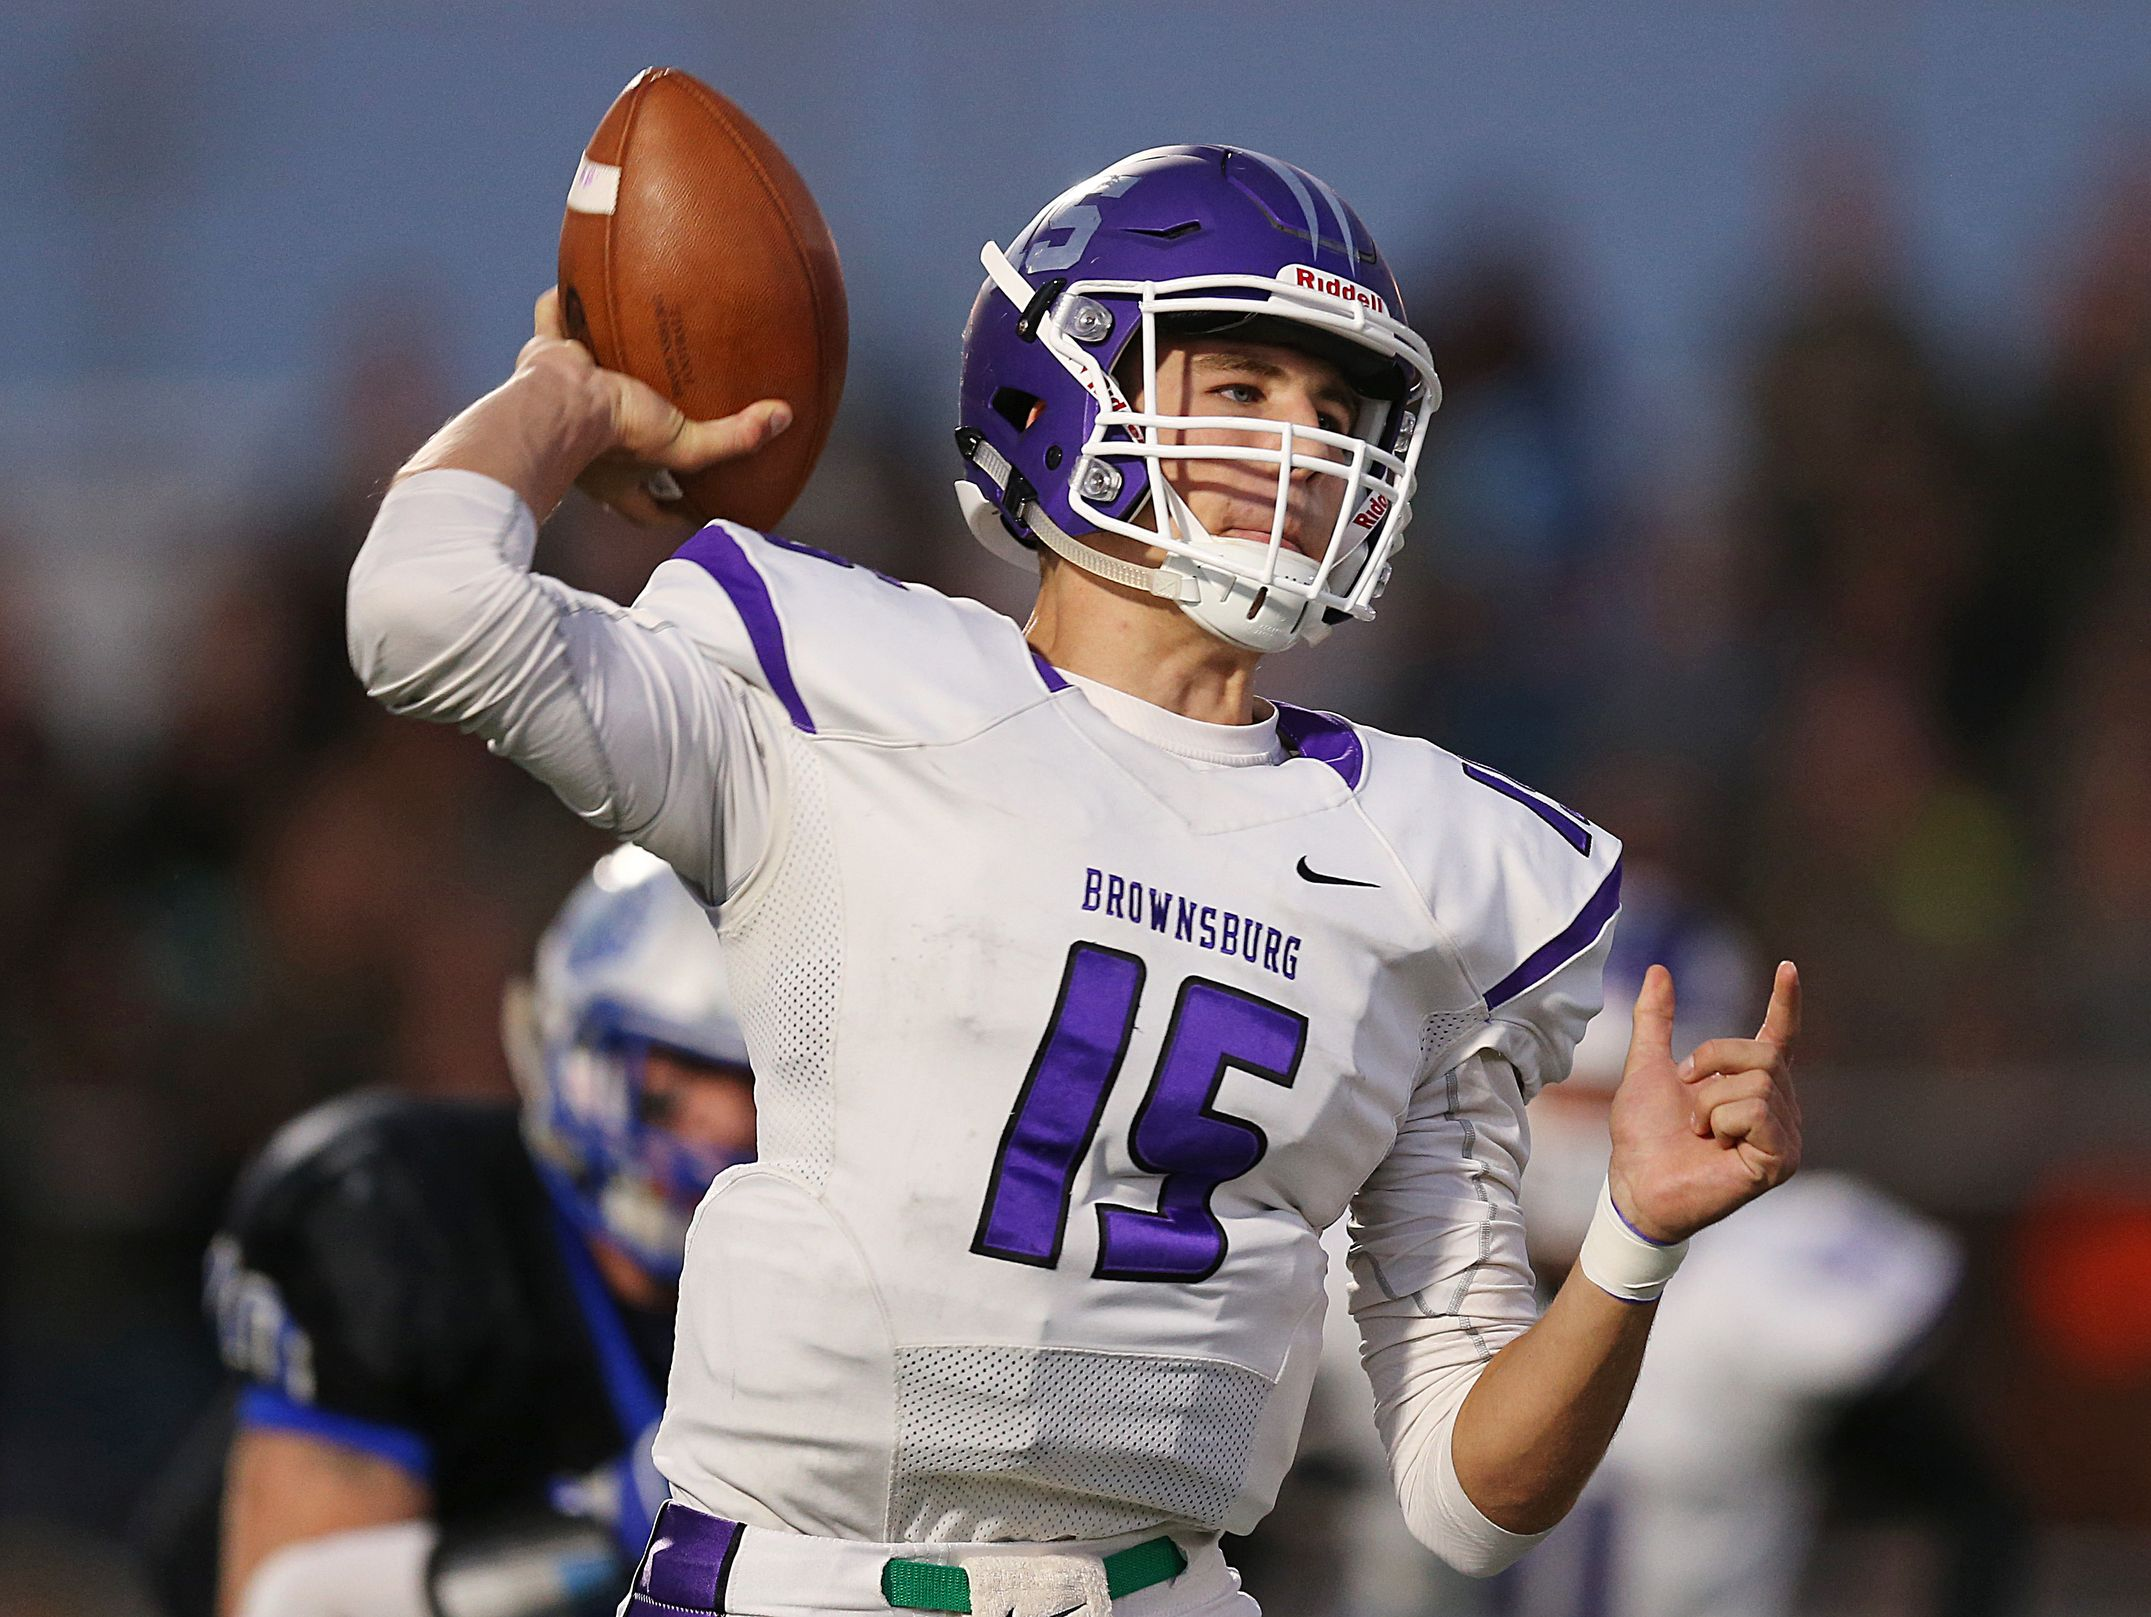 The nation's top-rated pro-style QB, Hunter Johnson led Brownsburg to a Hoosier Crossroads Conference title.